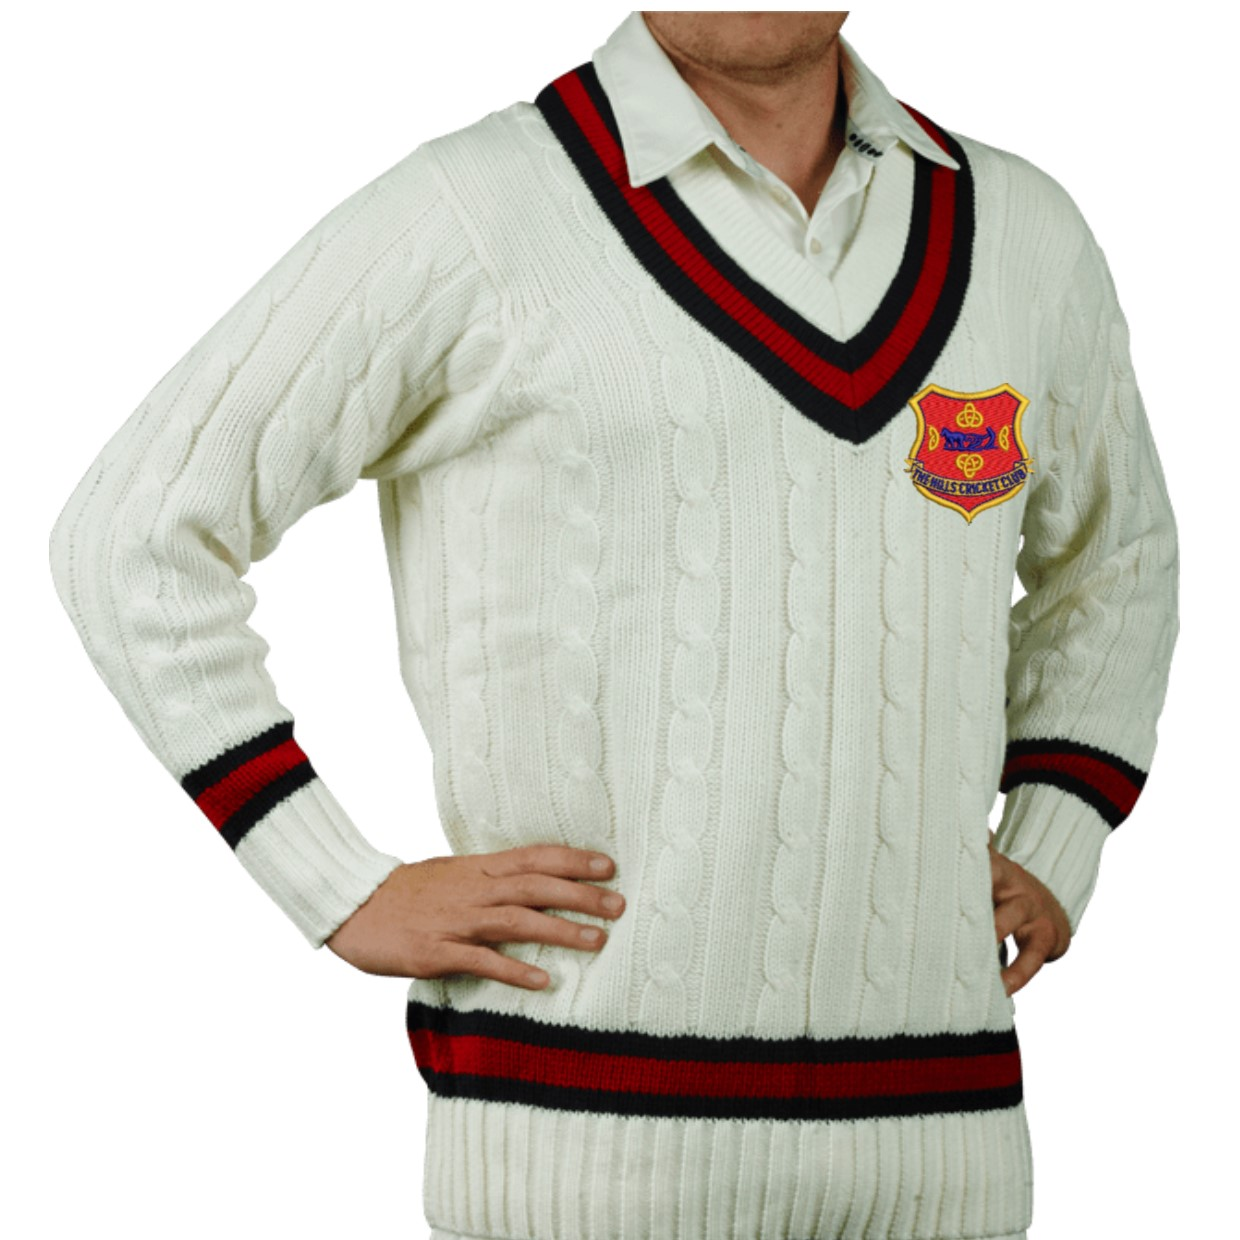 The Hills Cricket Club Sweater